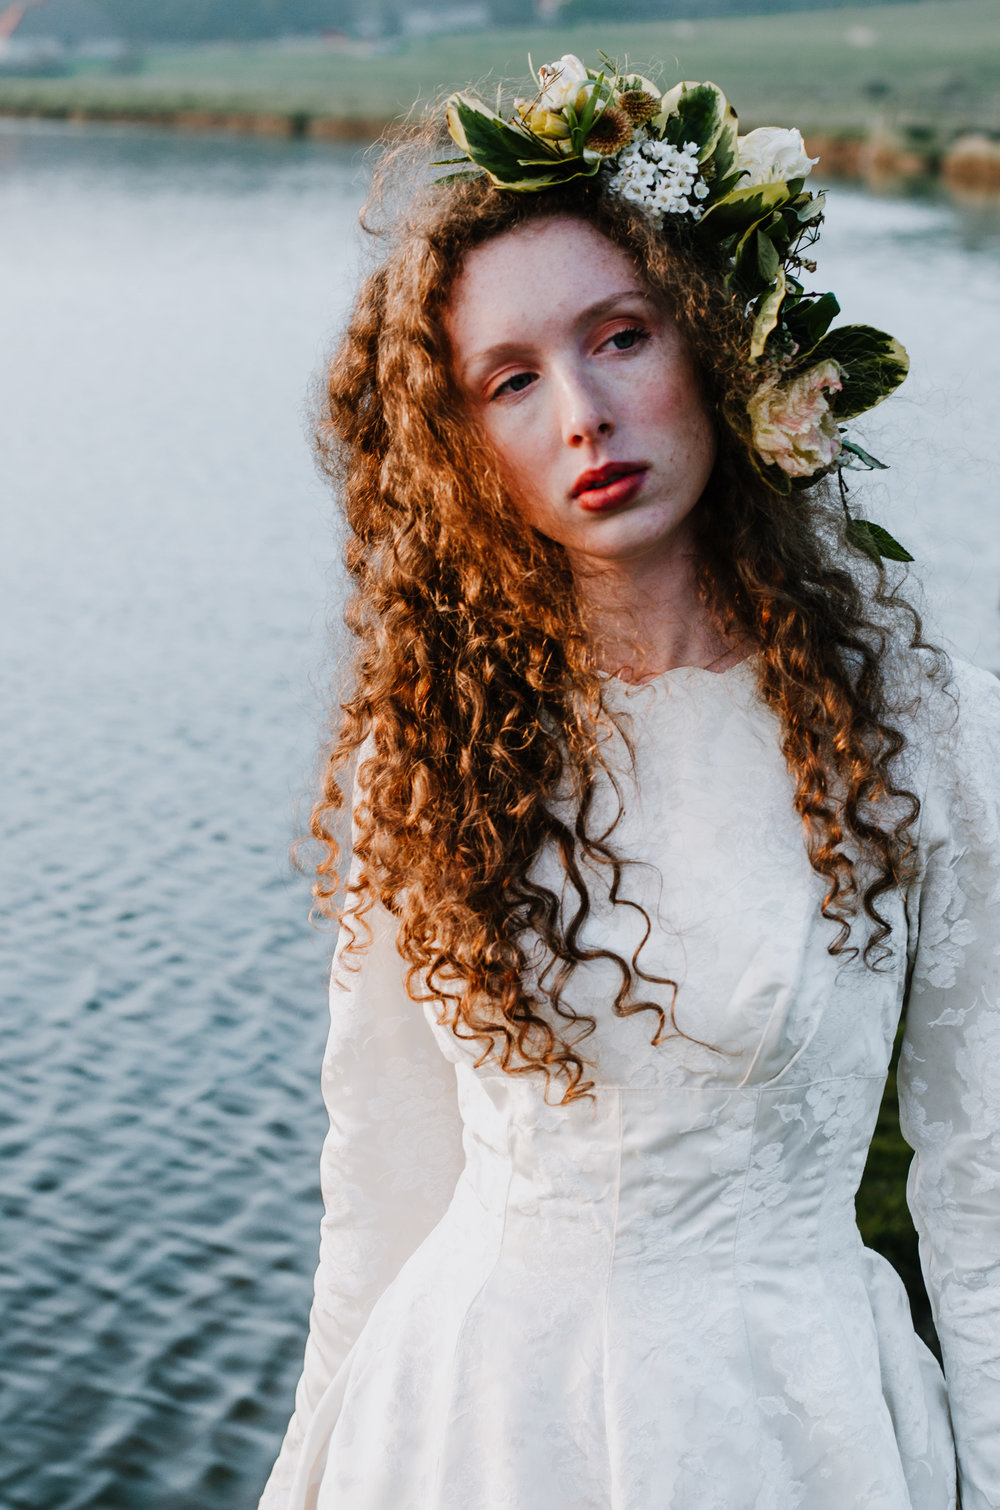 Bridal - Cuckmere Haven 2018 - Aiste Saulyte Photography-35.jpg